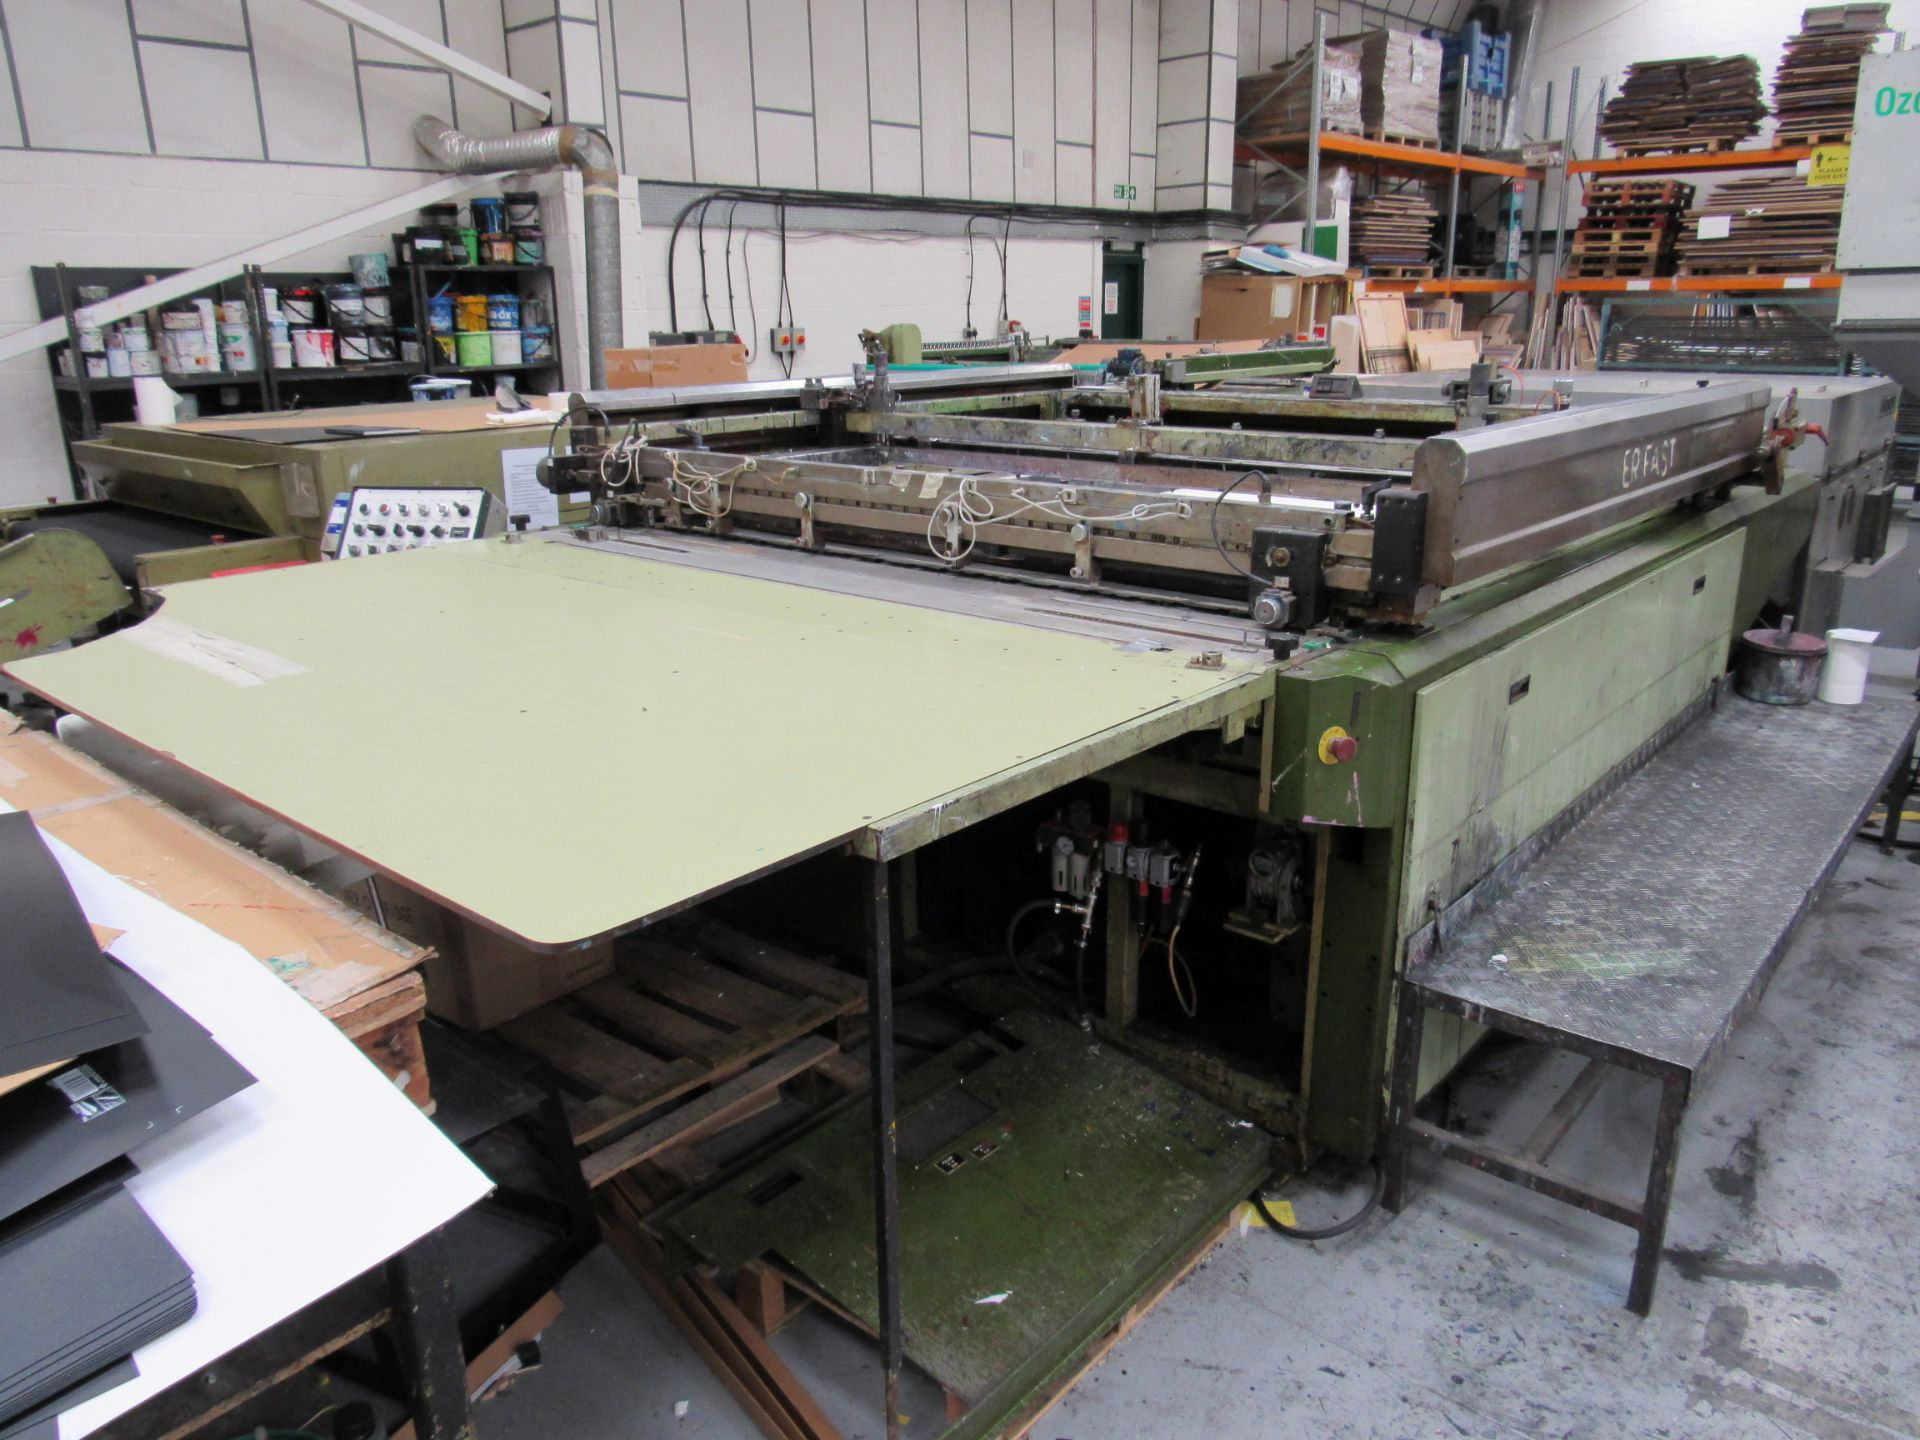 Serfast Screen Printer with Natgraph 170-02.01 UV Dryer, Serial Number 337-02-04, 2002 - Image 5 of 13